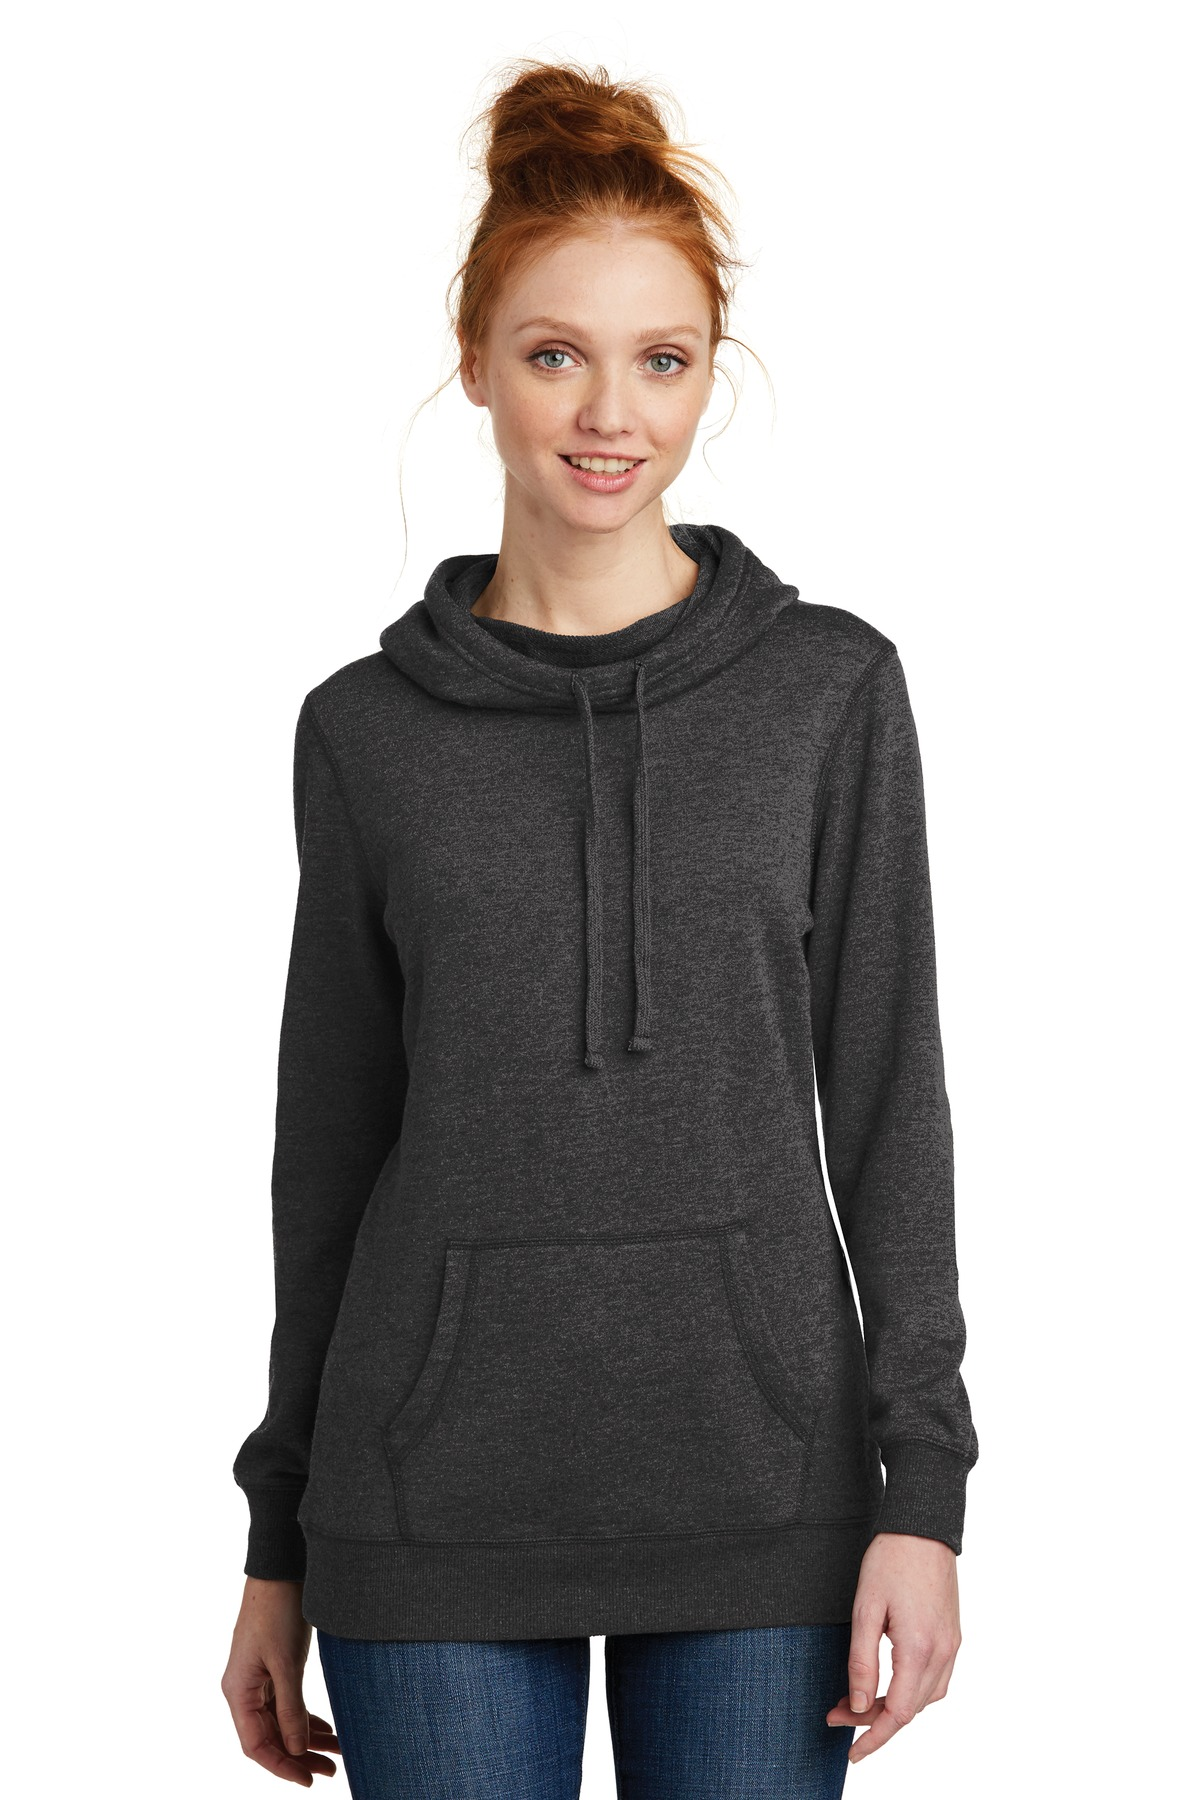 District  ®  Women's Lightweight Fleece Hoodie. DM493 - Heathered Black